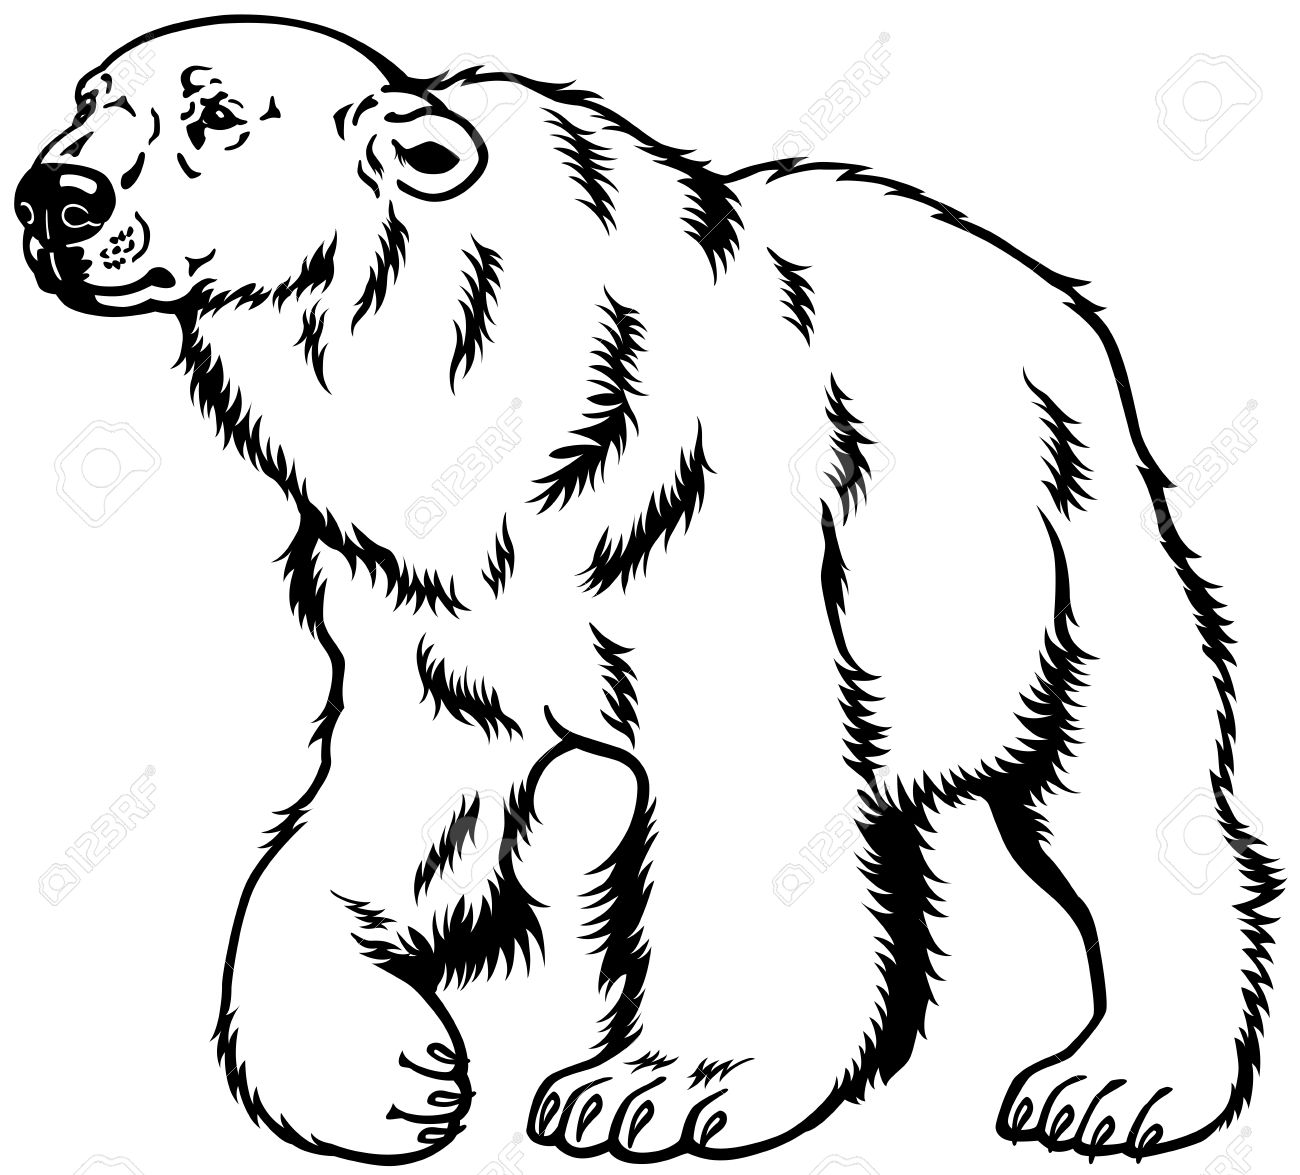 Polar bear clipart black and white